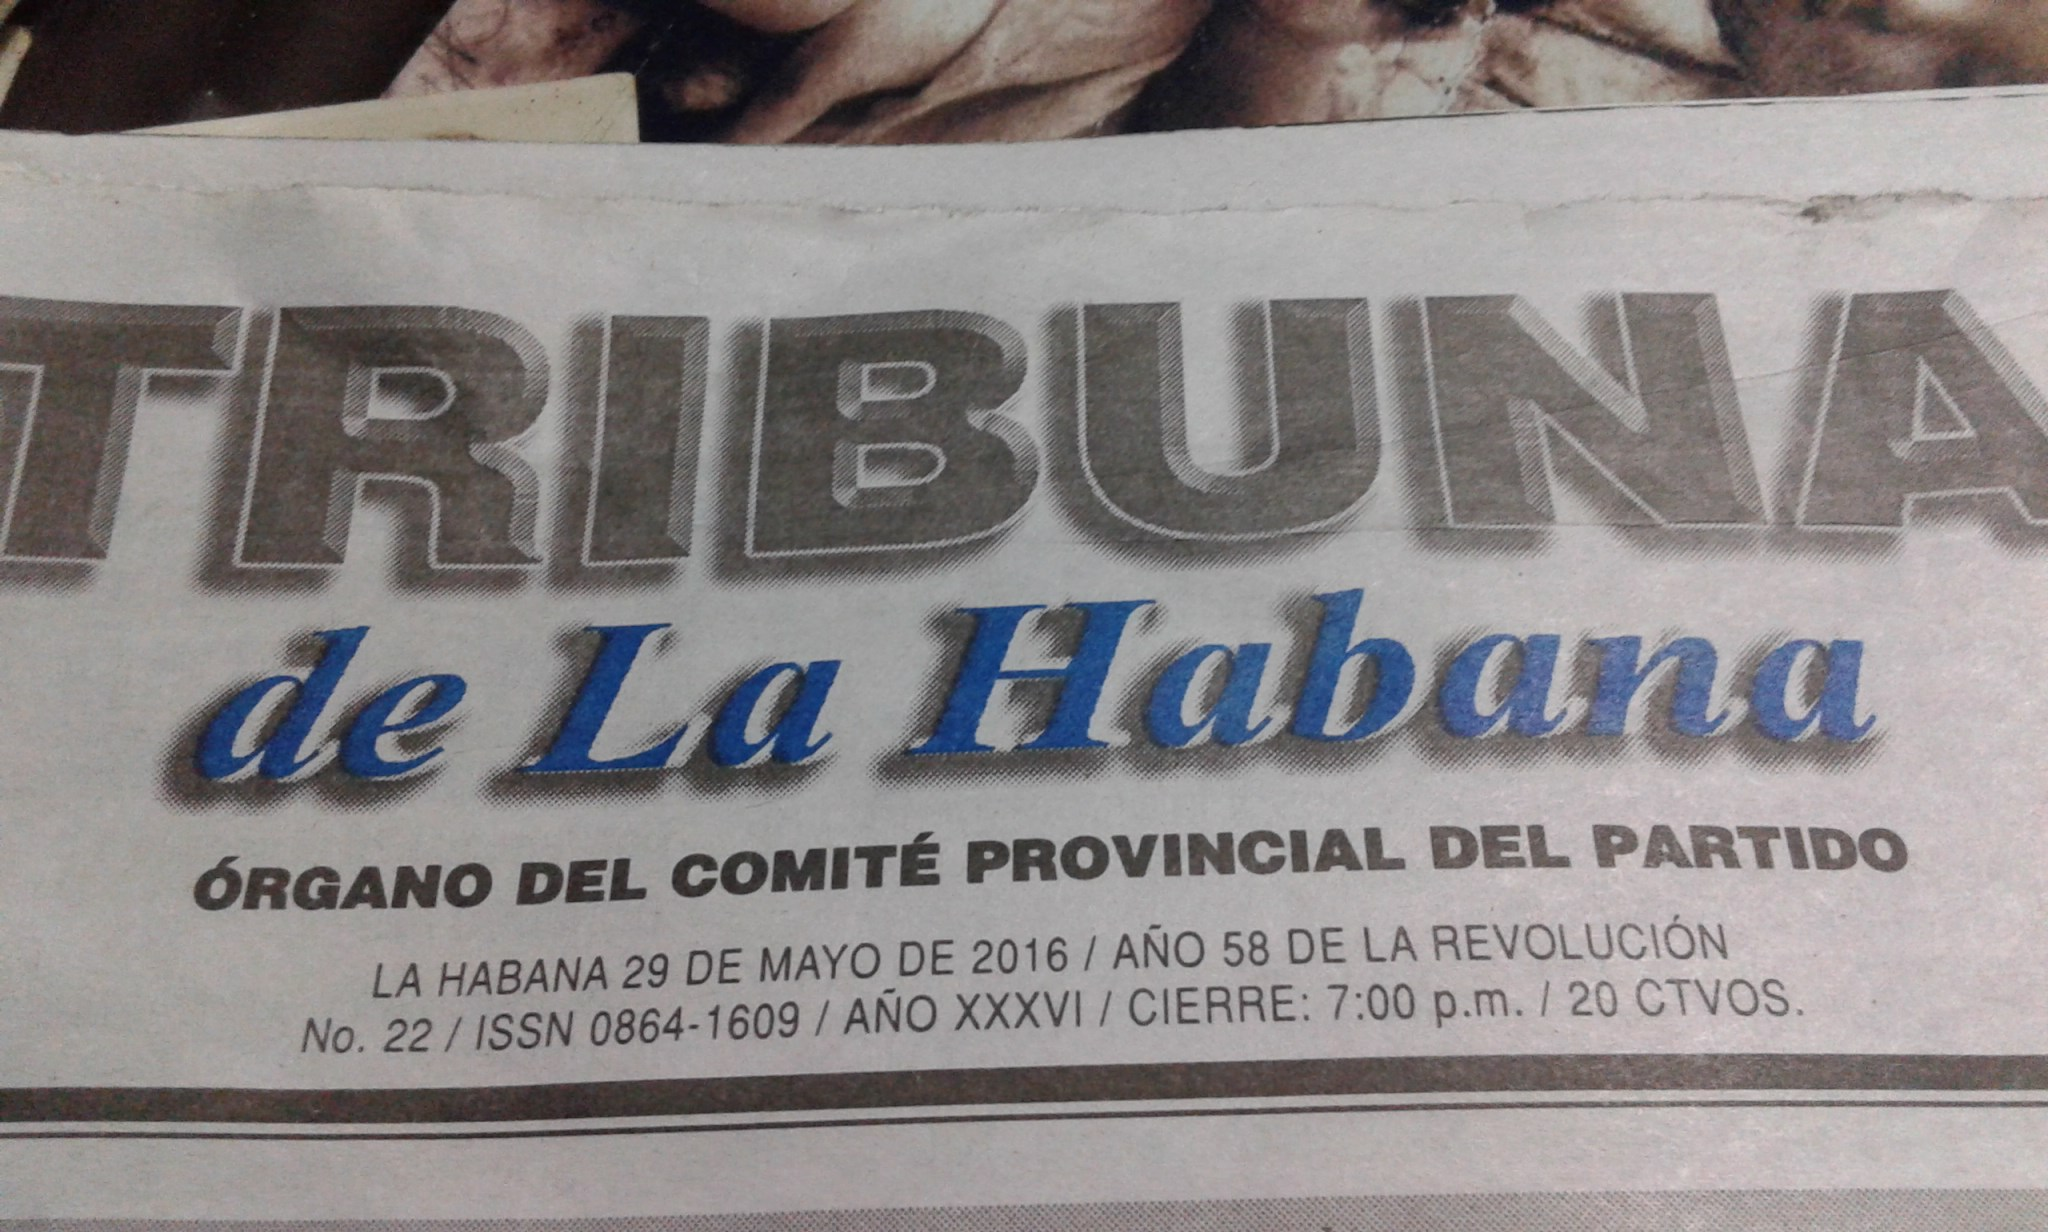 Havana Tribune: Official Organ of the Provincial Committee of the [Communist] Party